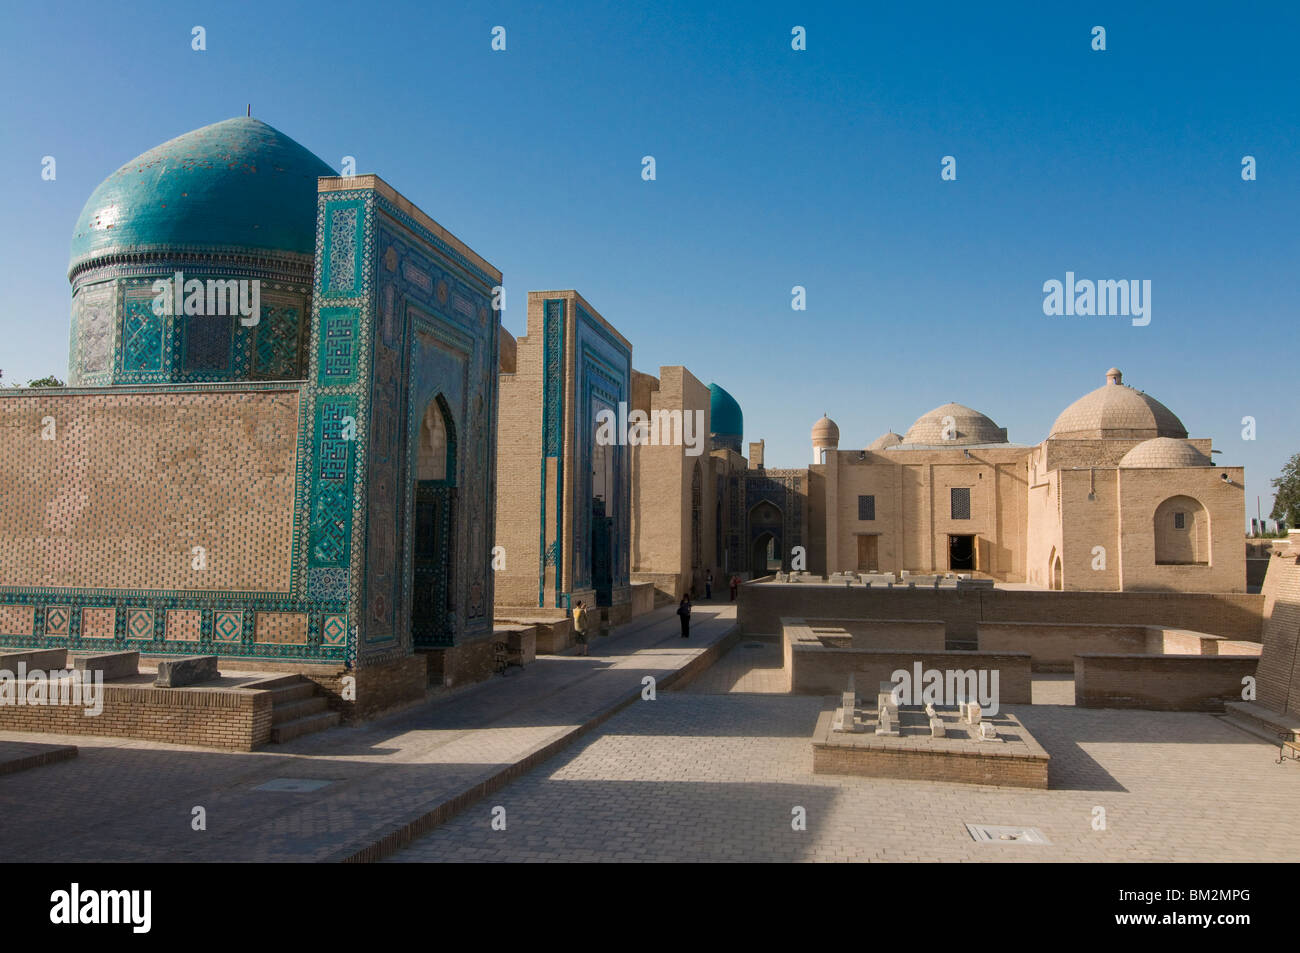 Burial place, Shahr-i-Zindah shrines, UNESCO World Heritage Site, Samarkand, Uzbekistan - Stock Image